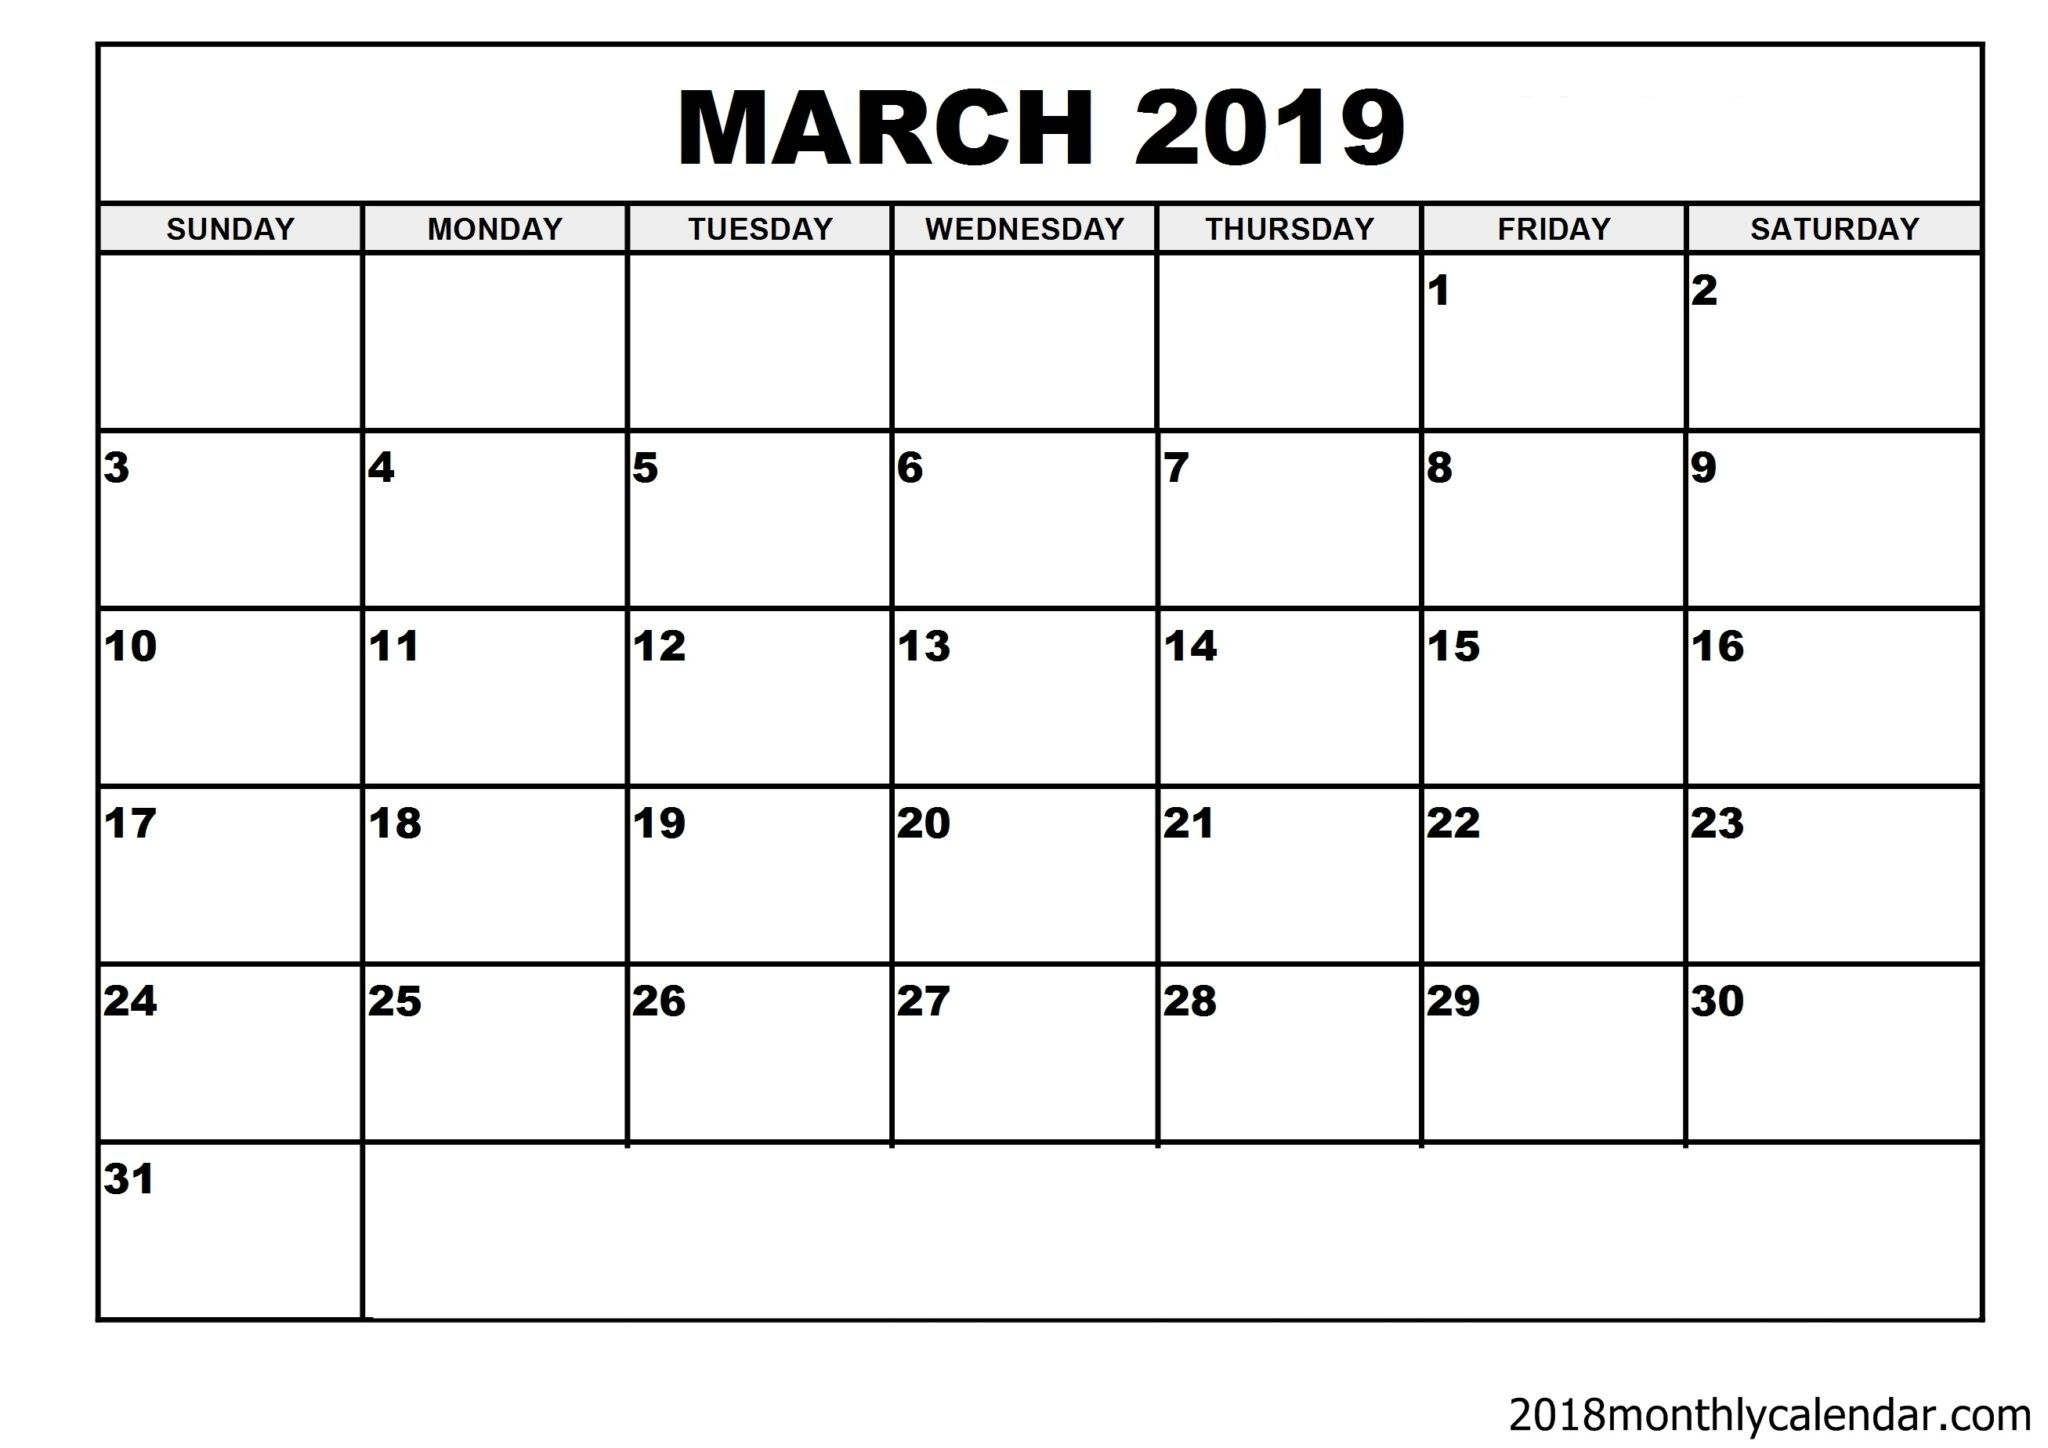 Download March 2019 Calendar – Blank Template - Editable Calendar pertaining to Blank Calendar To Fill In Free